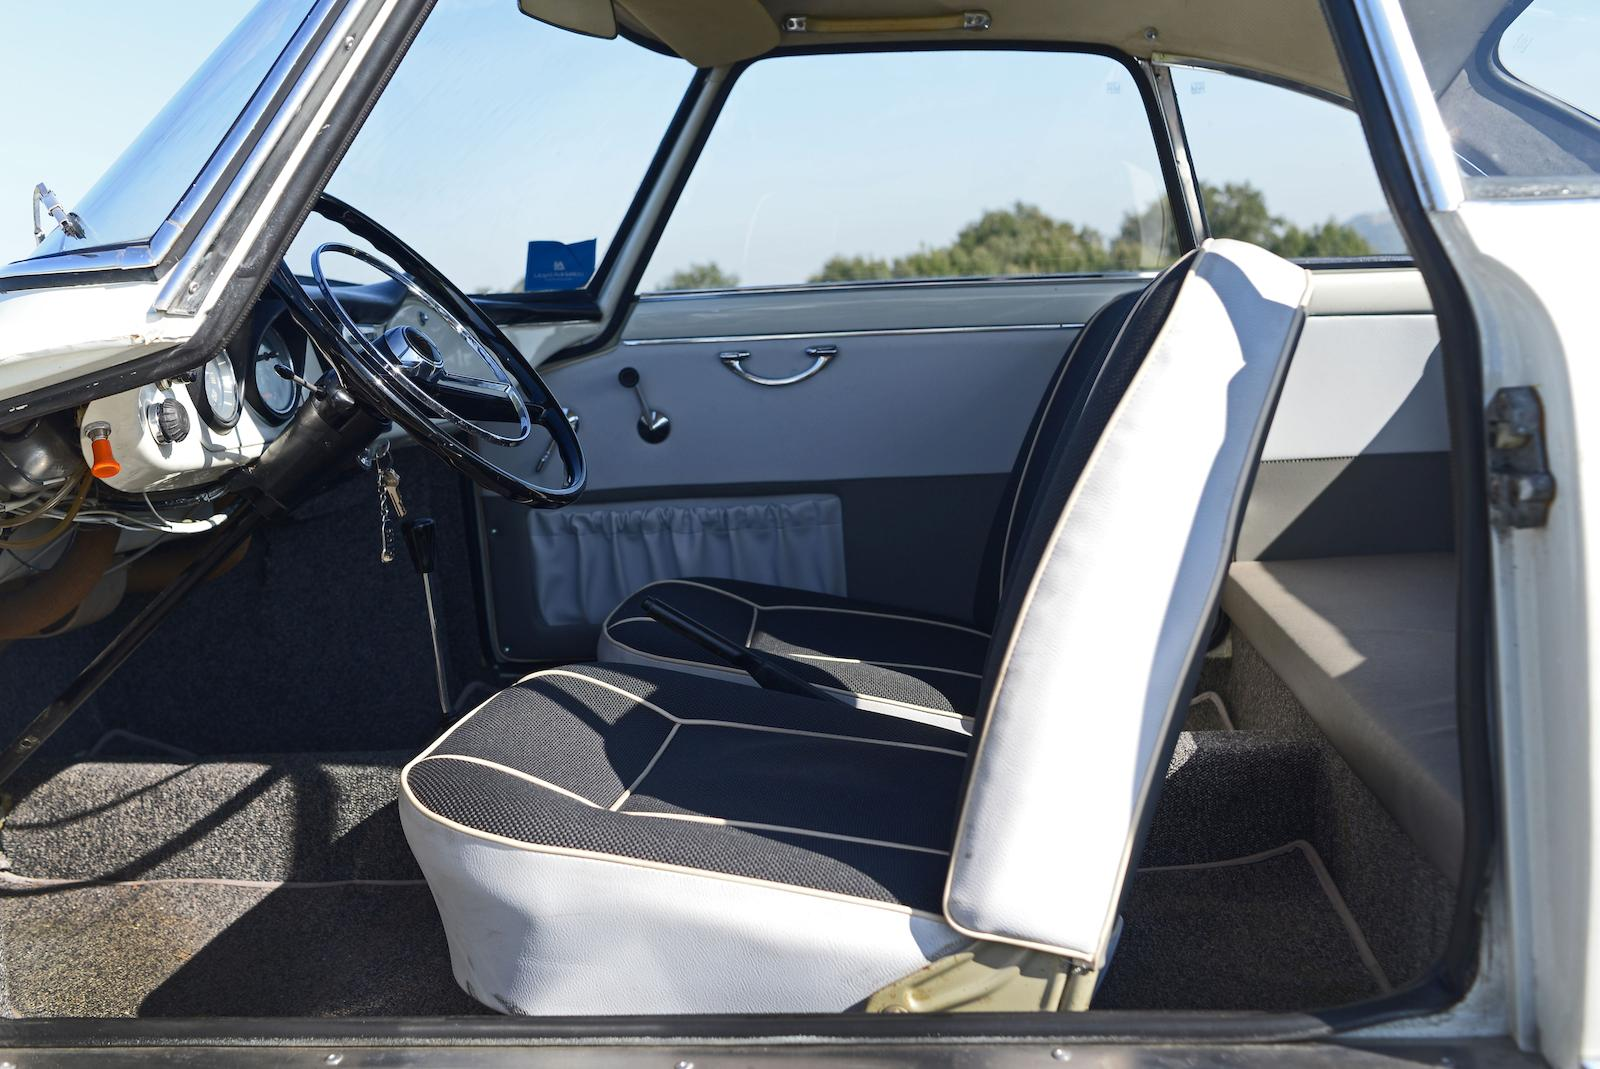 1966 NSU Sport Prinz Coupé interior seats